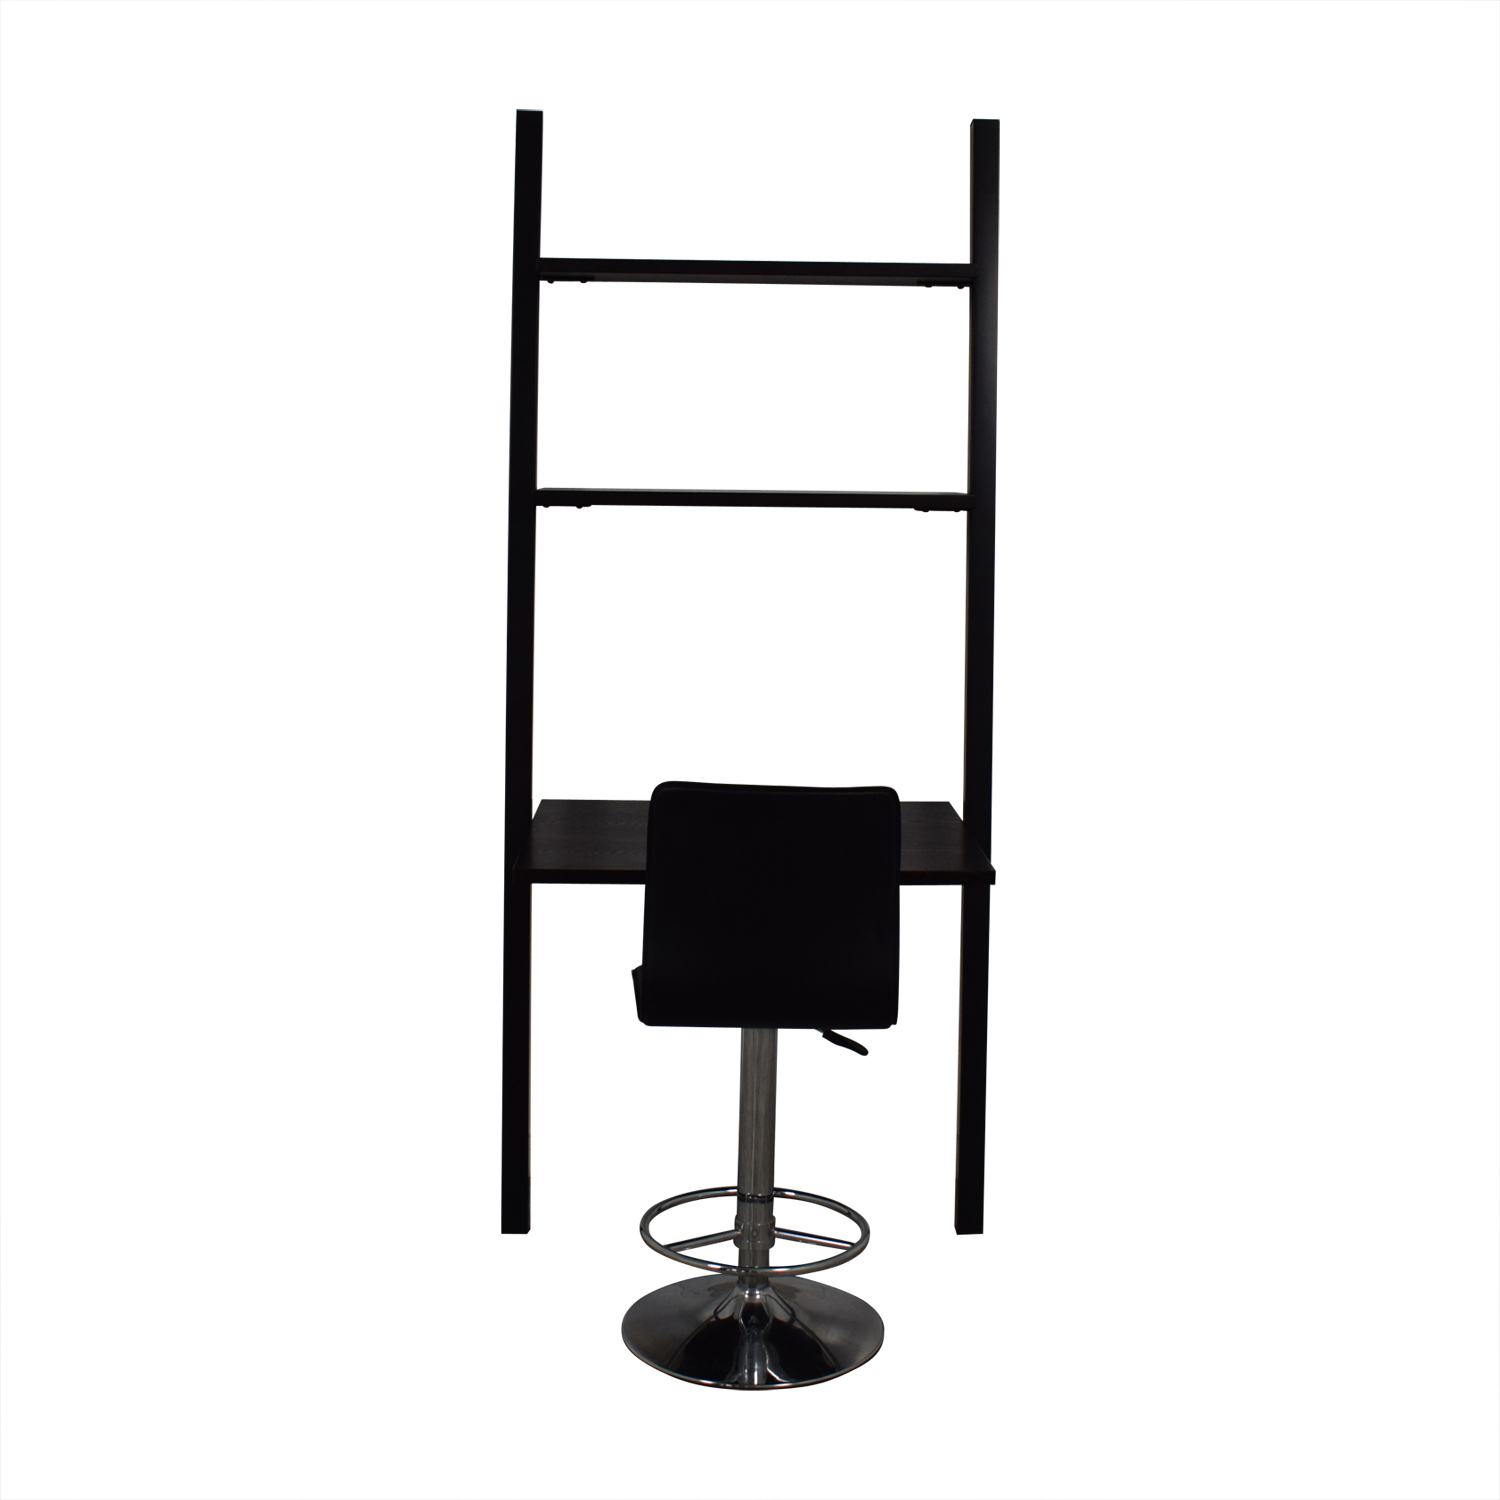 The Door Store The Door Store Ladder Shelf Desk with Modern Black Chair Home Office Desks